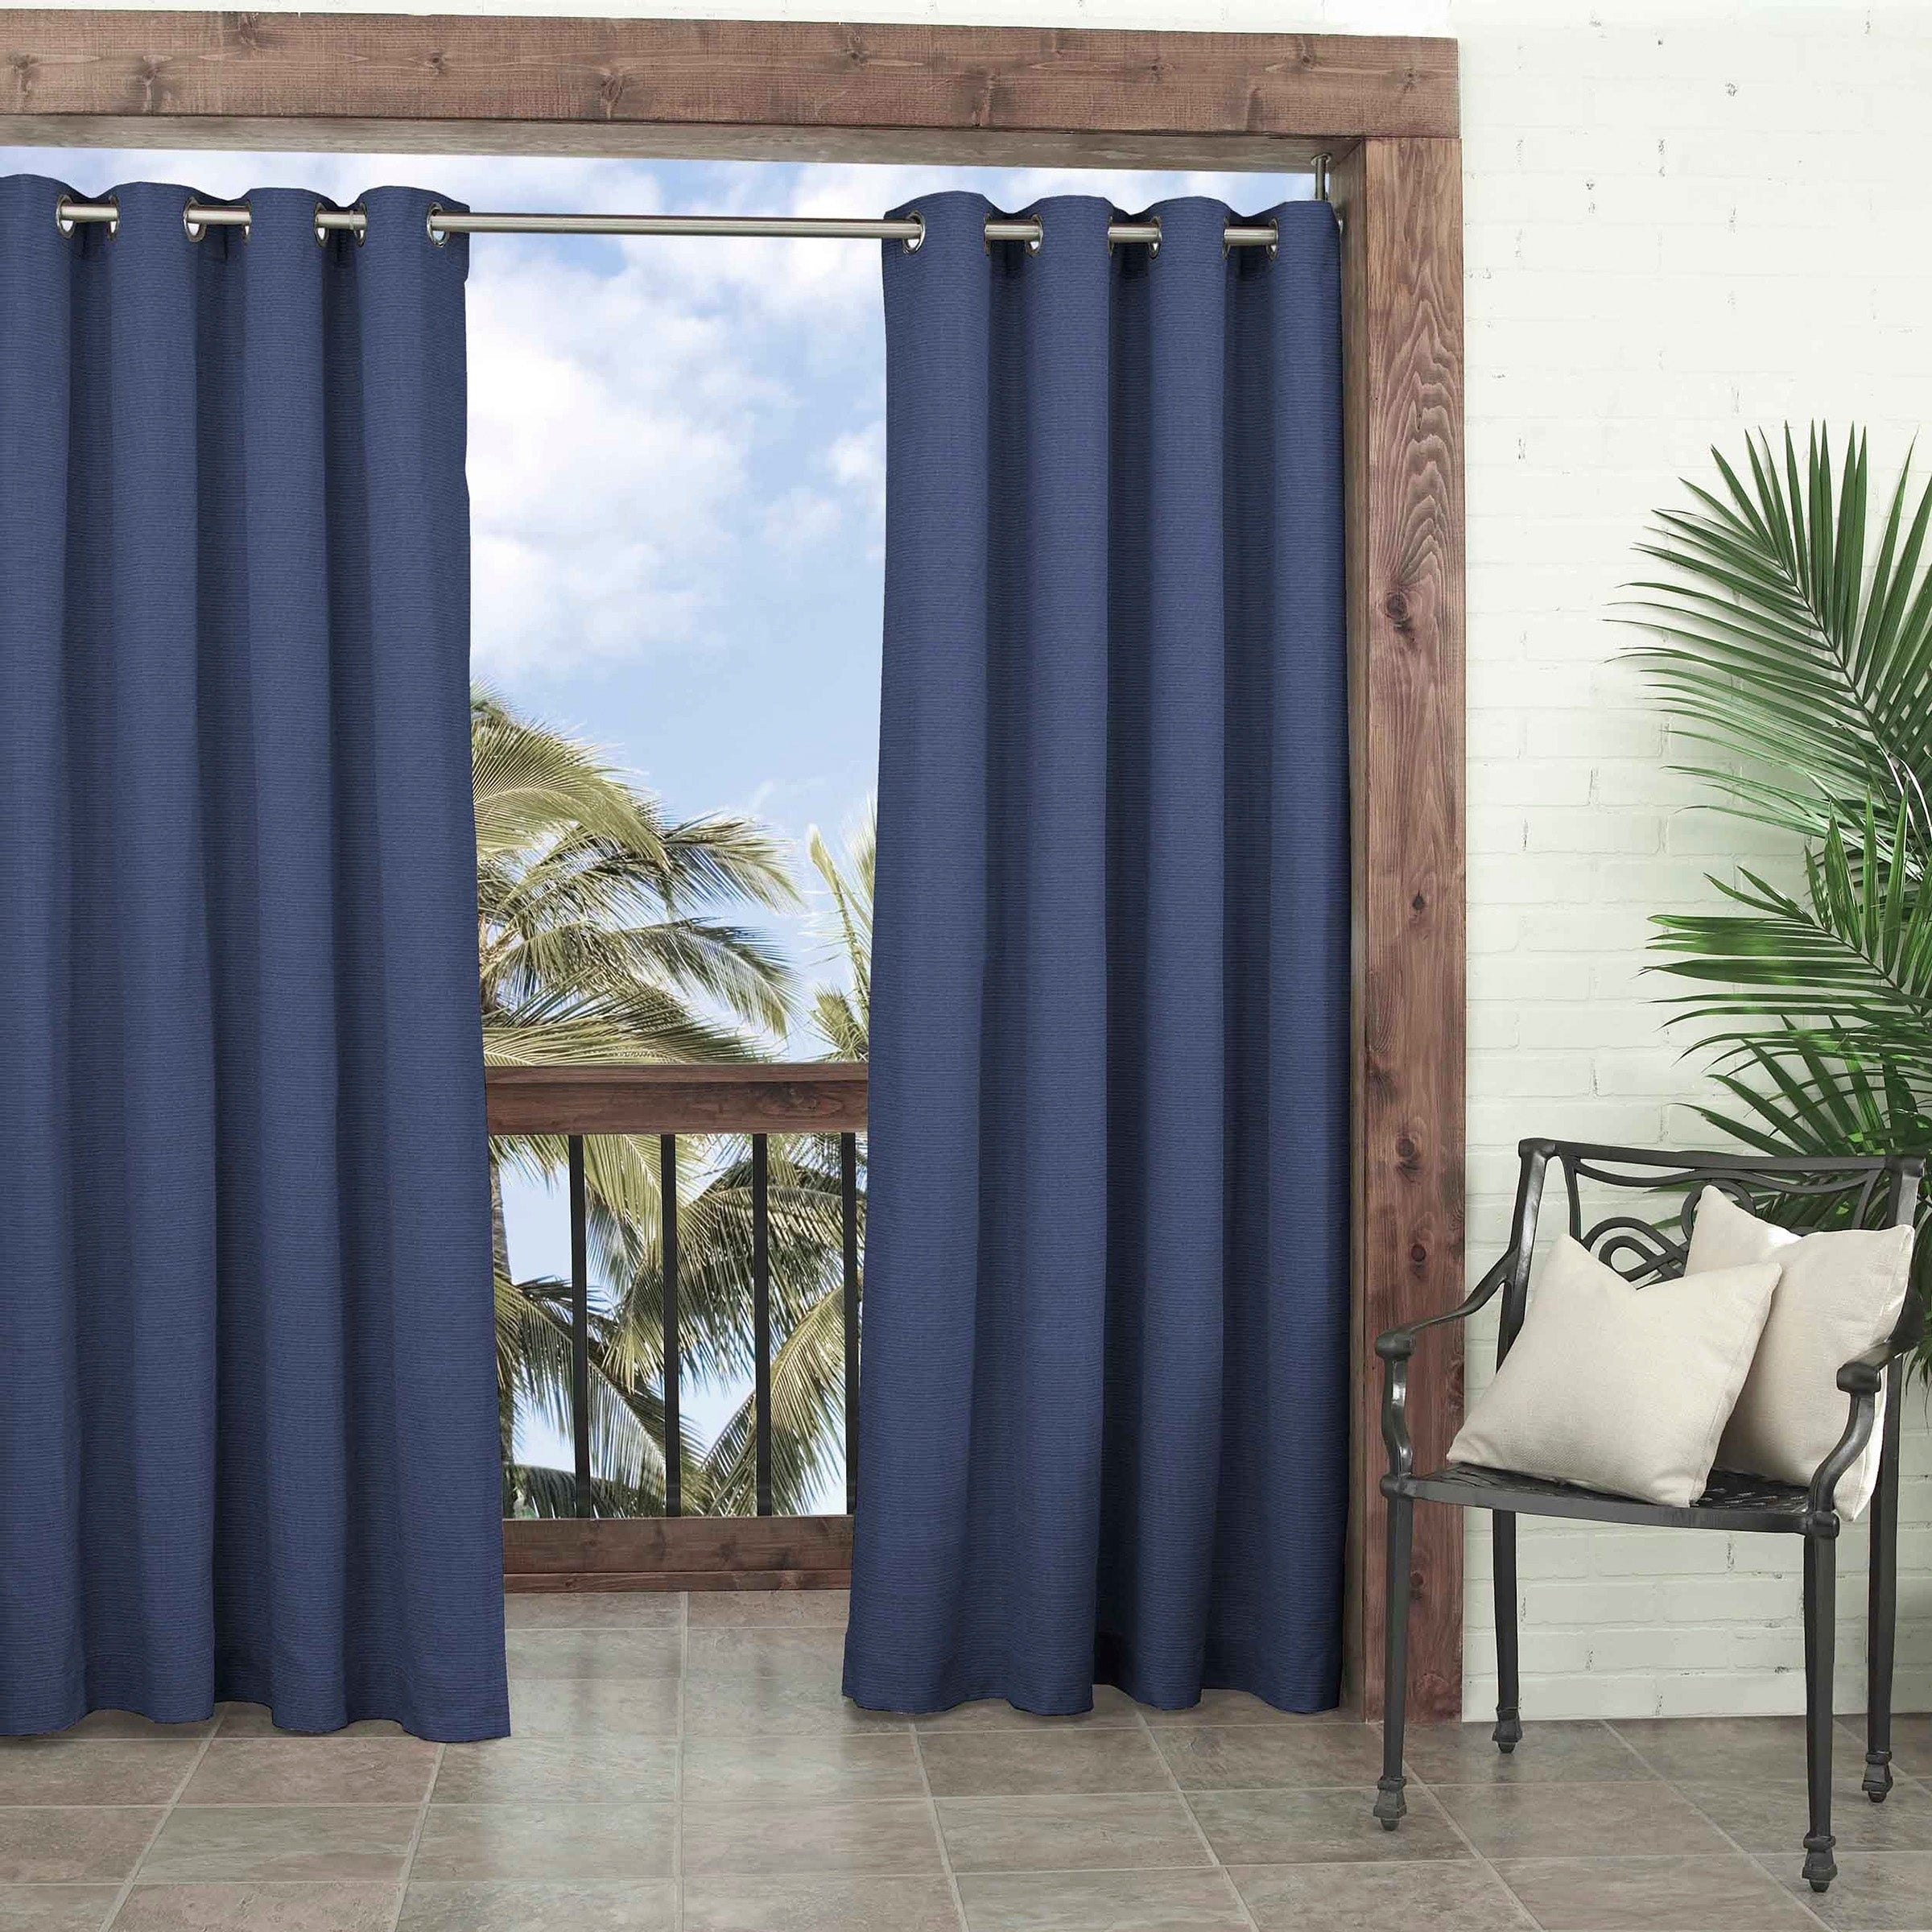 portrait sun endearing best hanging hawk wide for sunbrella pergola panels of curtains size fabric room drapes curtain blue machine grommets and rods yellow garden waterproof easy cloth diy interlined full cheap patio drop with pipe canvas washable grommet outdoor bleaching pvc